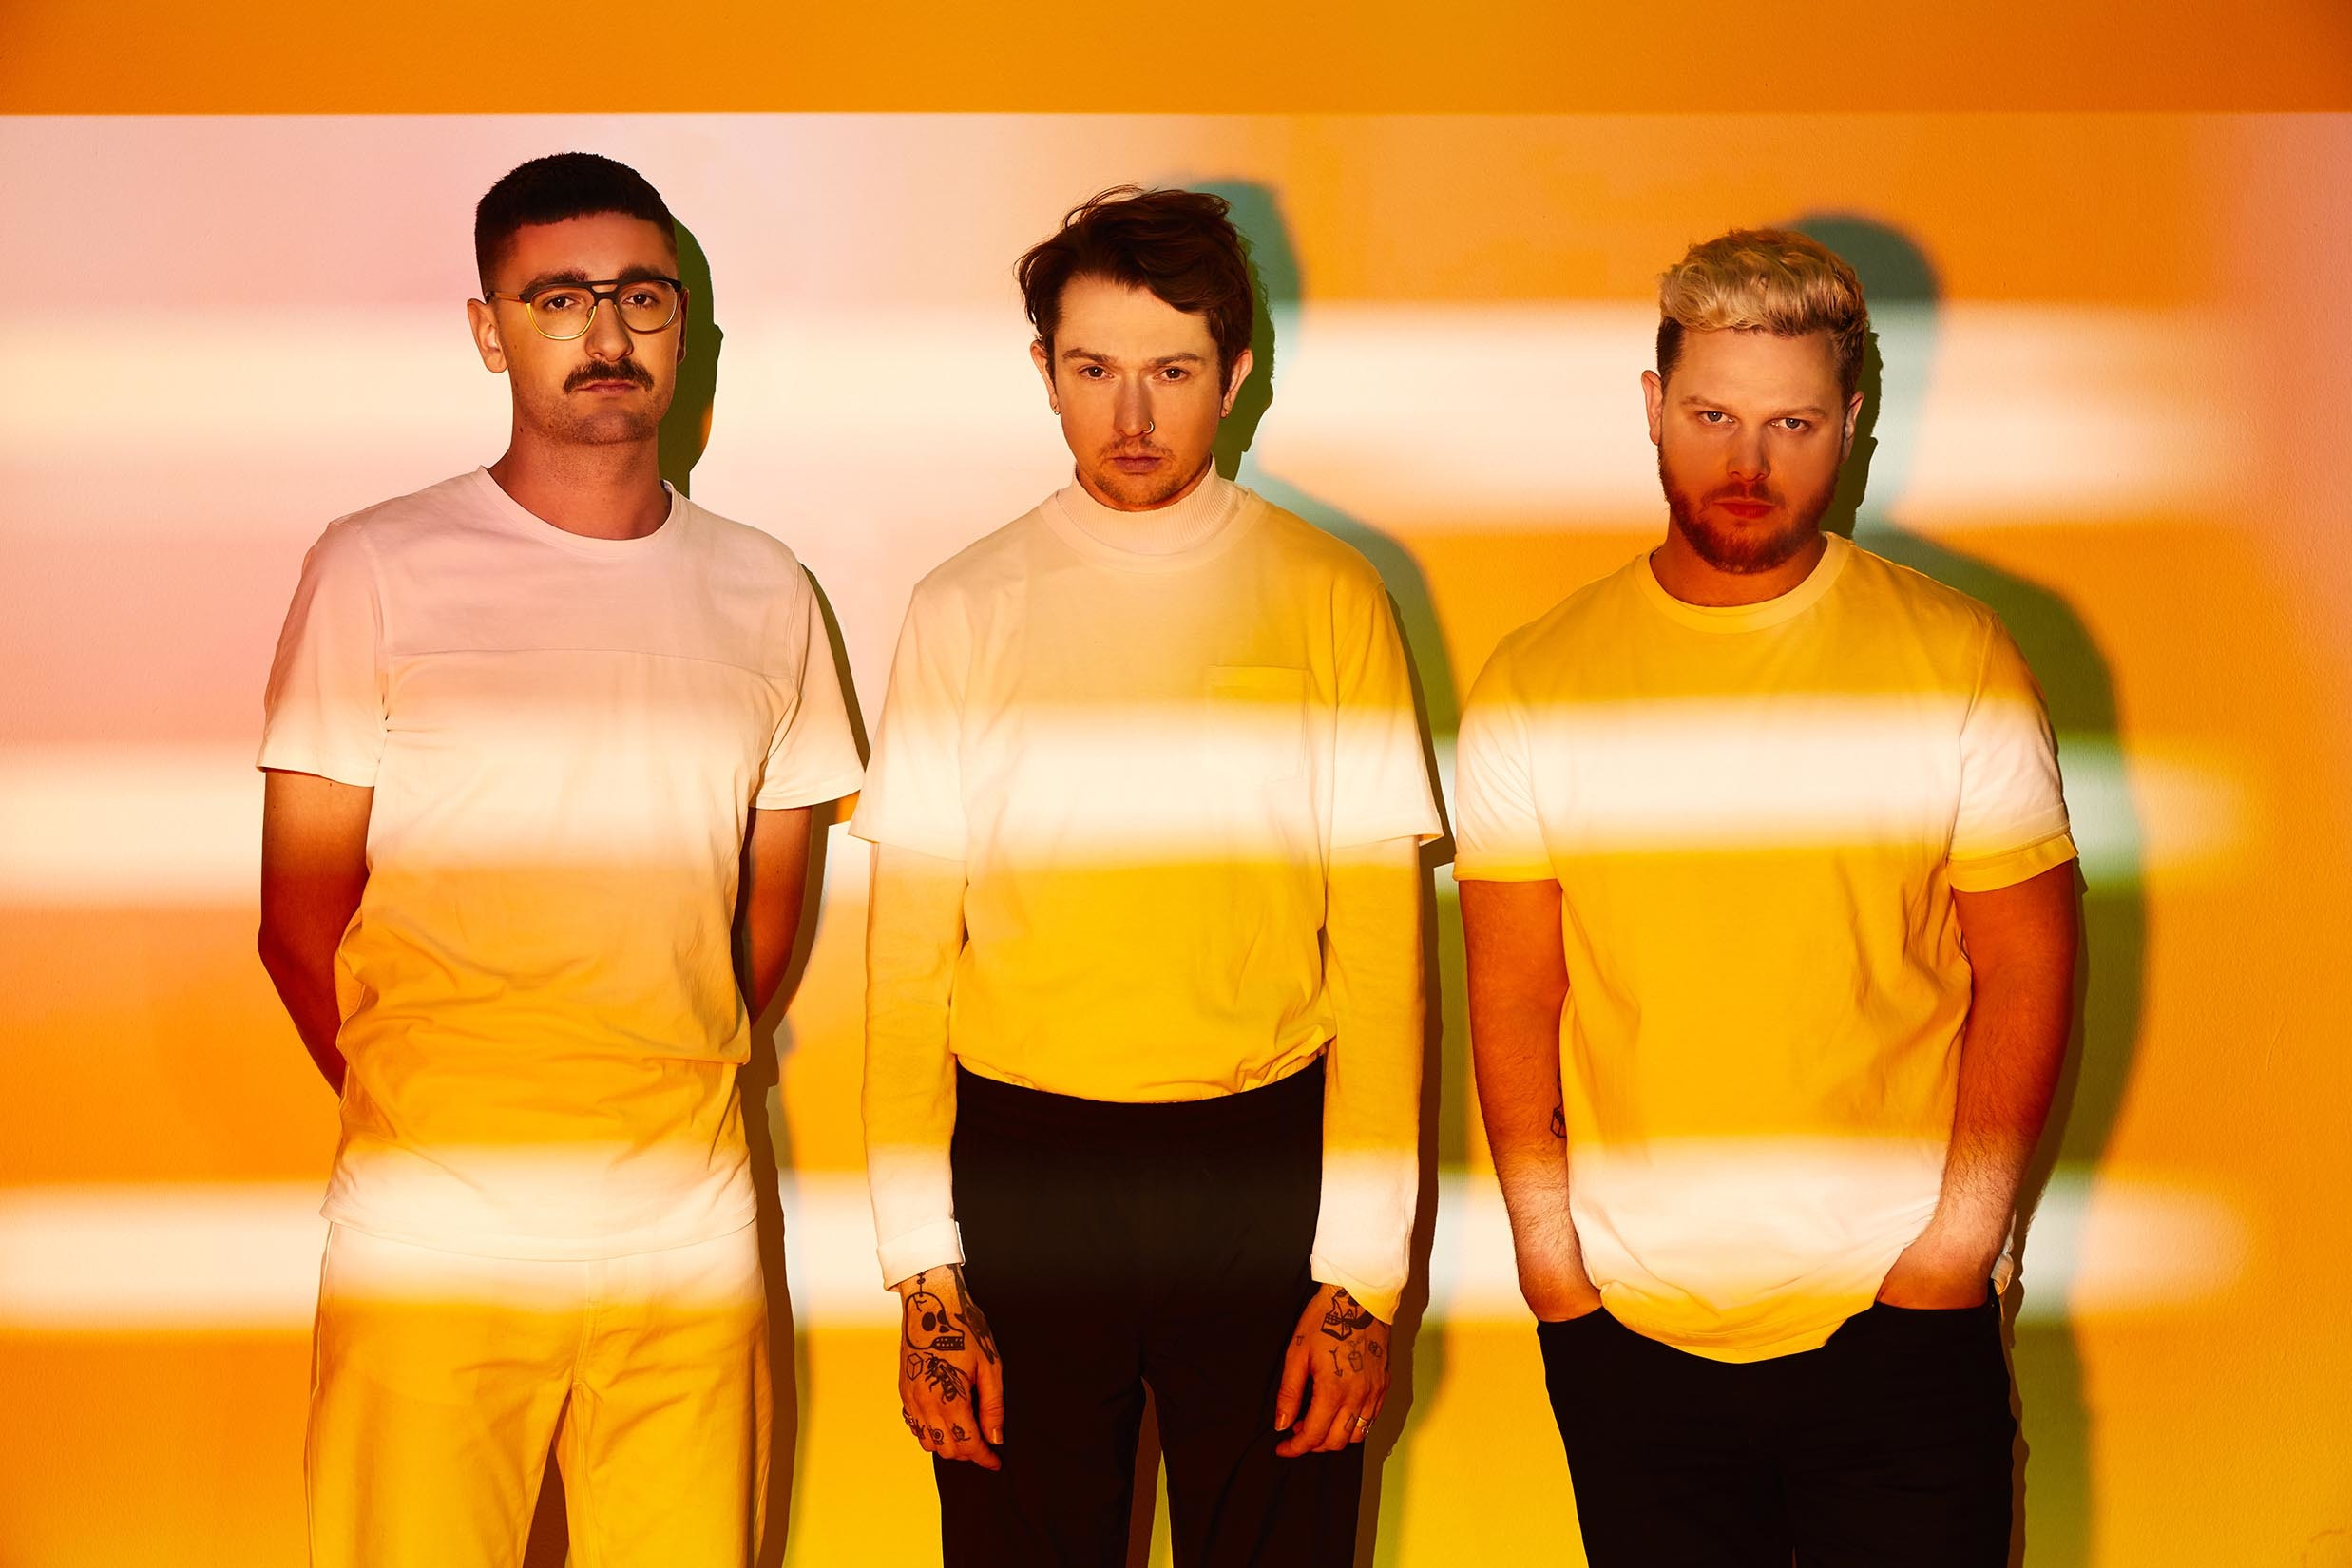 Alt-J announce remix album 'Reduxer' and new UK & Ireland tour dates